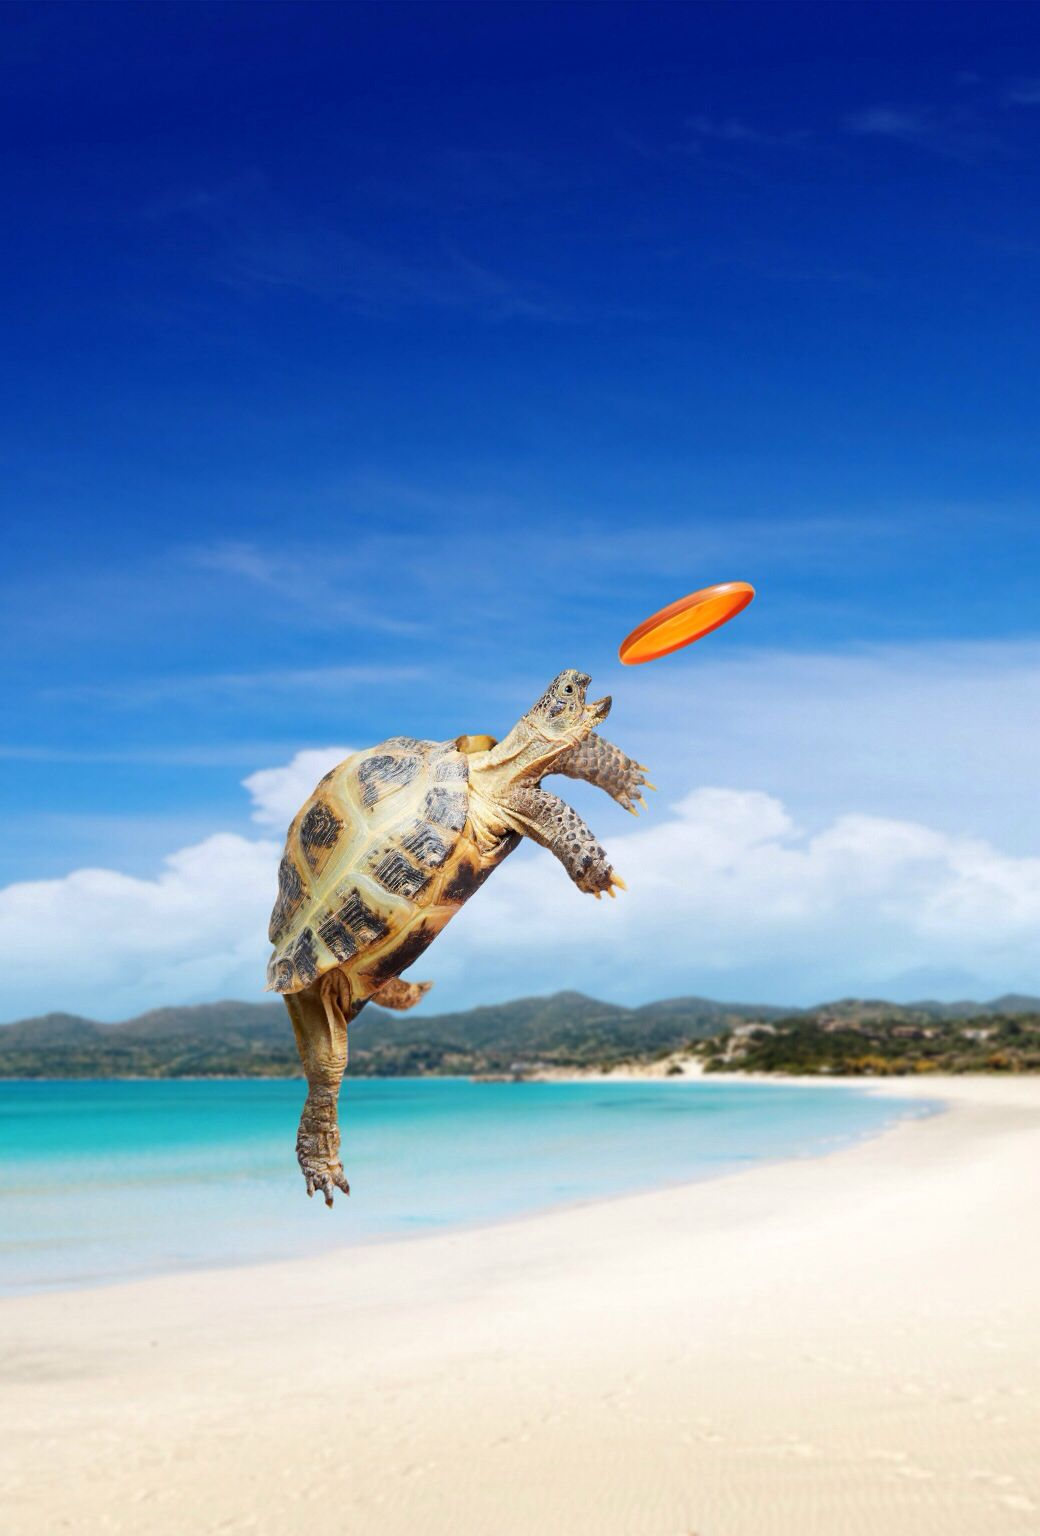 Turtle Catching A Frisbee On A Beach Ios 7 Wallpaper Funny